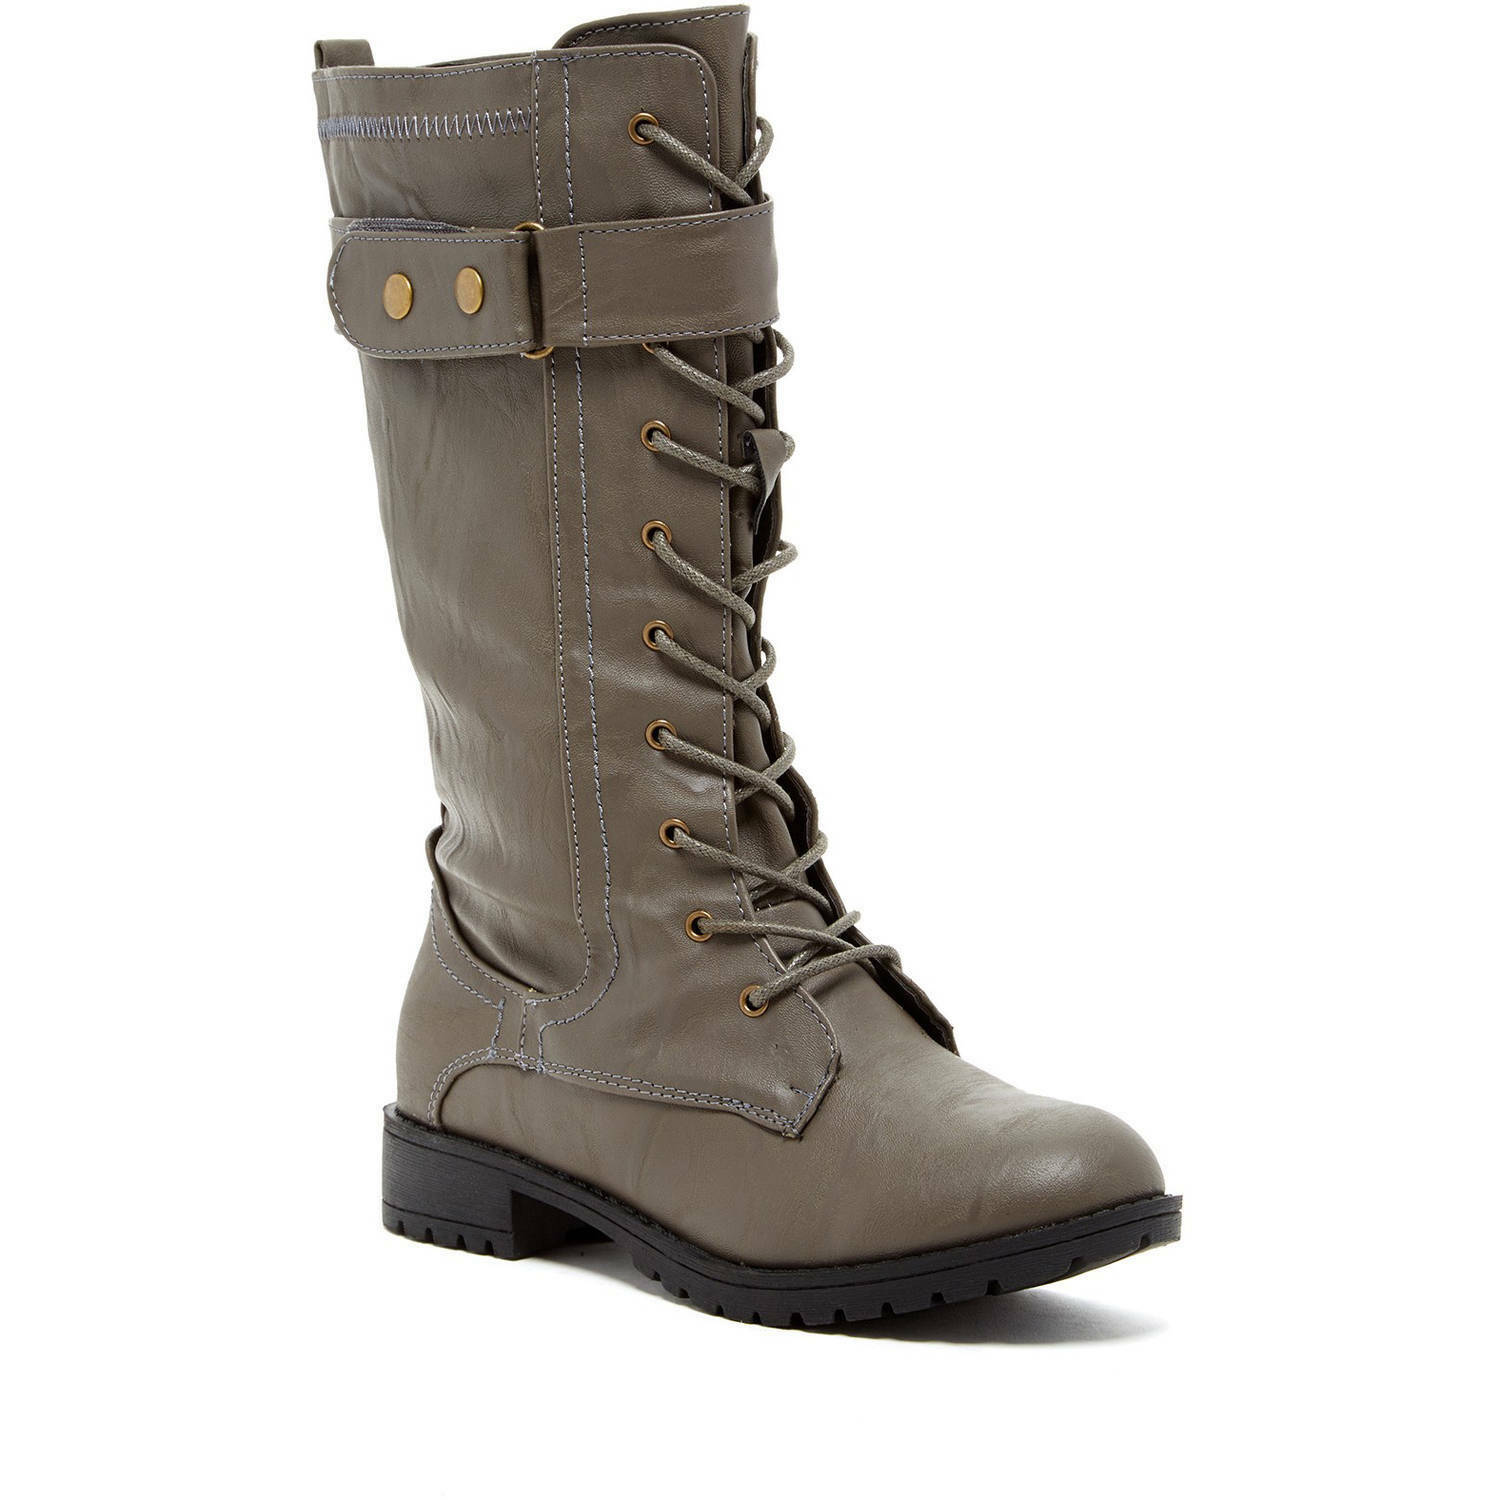 8aa38574690e1 ... Carrini Carrini Carrini CA Collection Women s Fashion Lace-Up Boots  Size 9